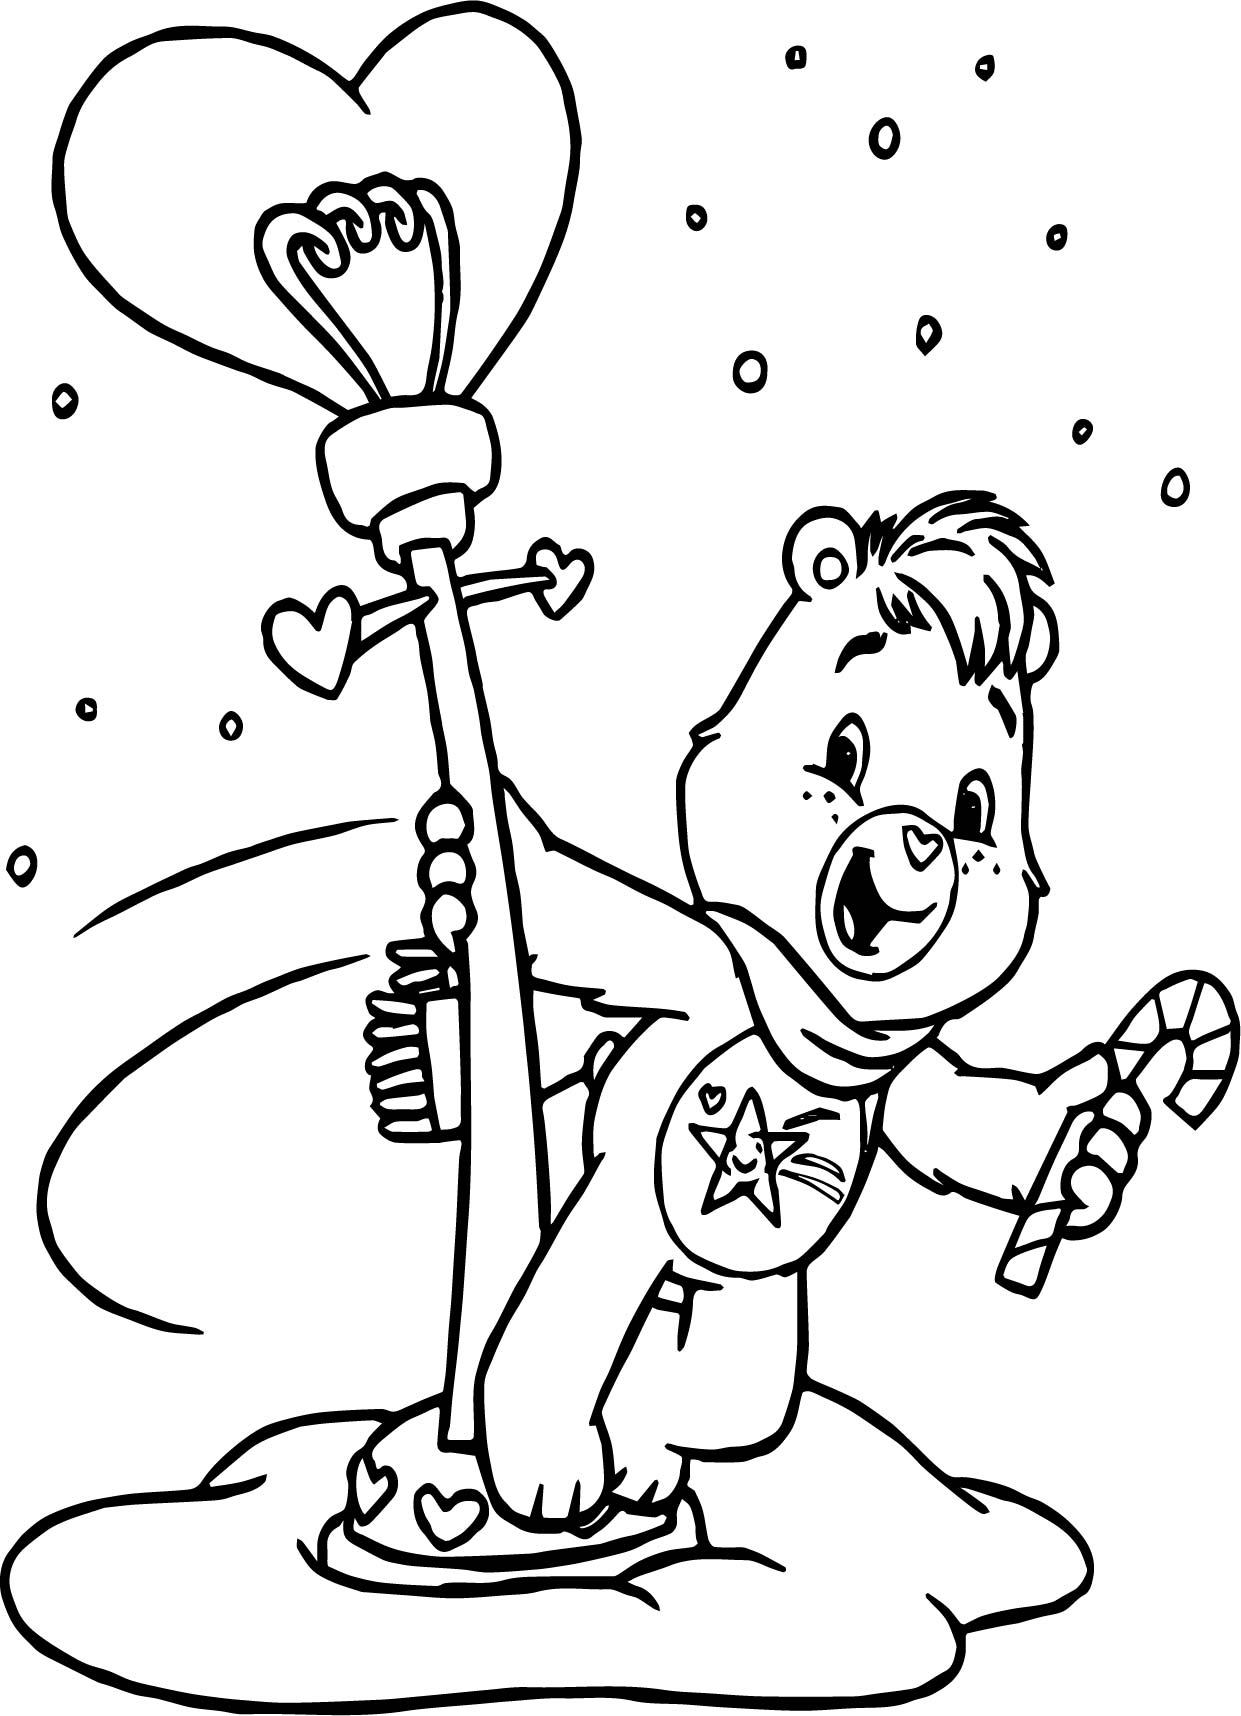 Care Bear Street Lamb Coloring Page